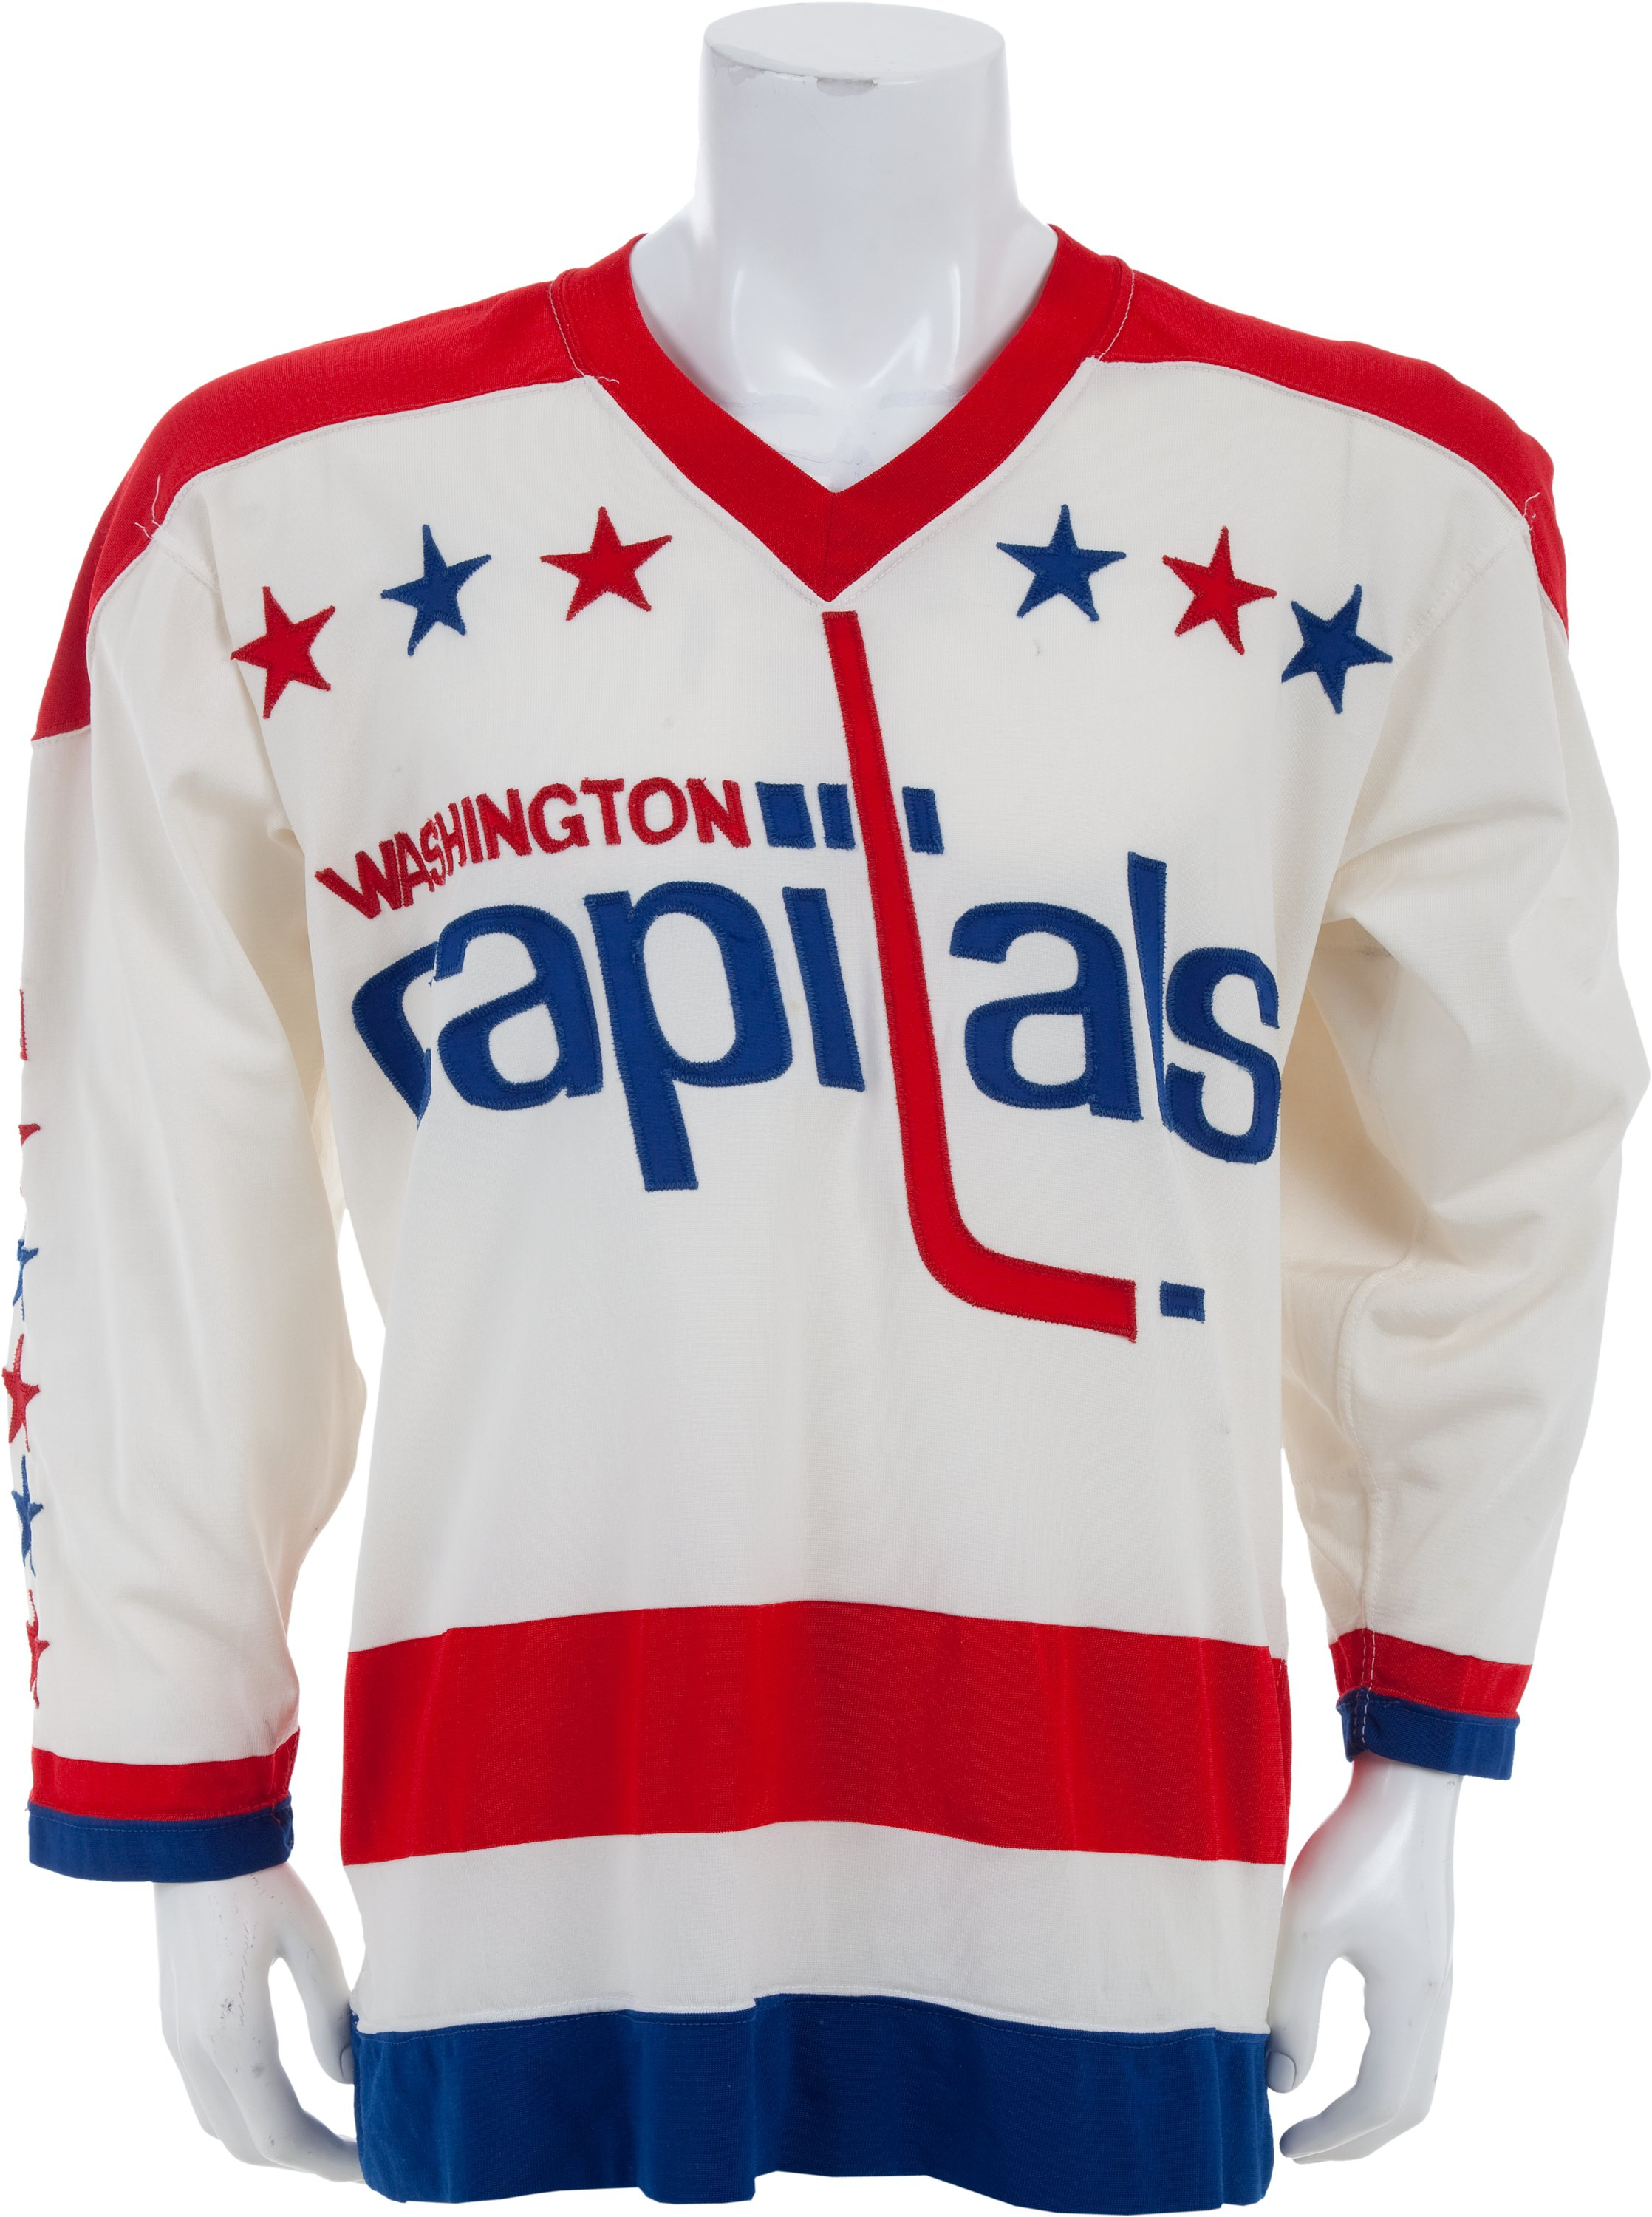 premium selection 24d4e 8a336 Mid 1970's Ron Low Game Issued Washington Capitals Jersey ...